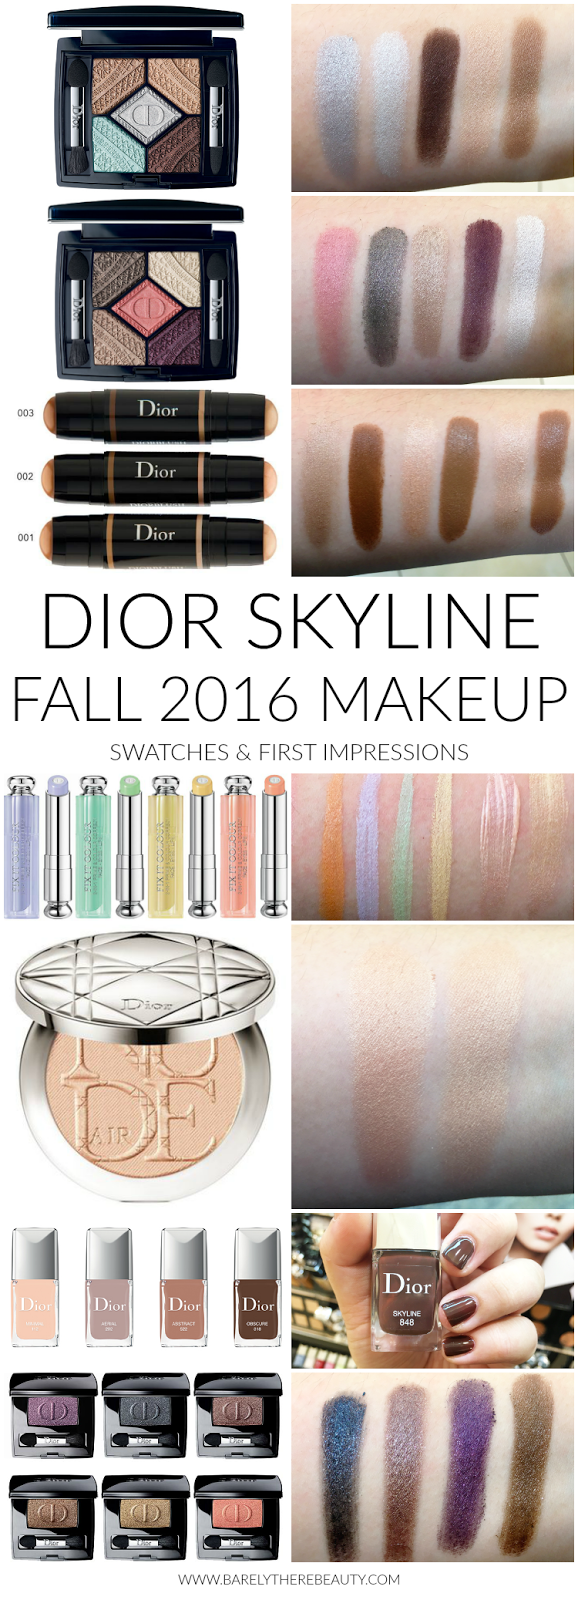 dior-skyline-fall-2016-swatches-review-barely-there-beauty